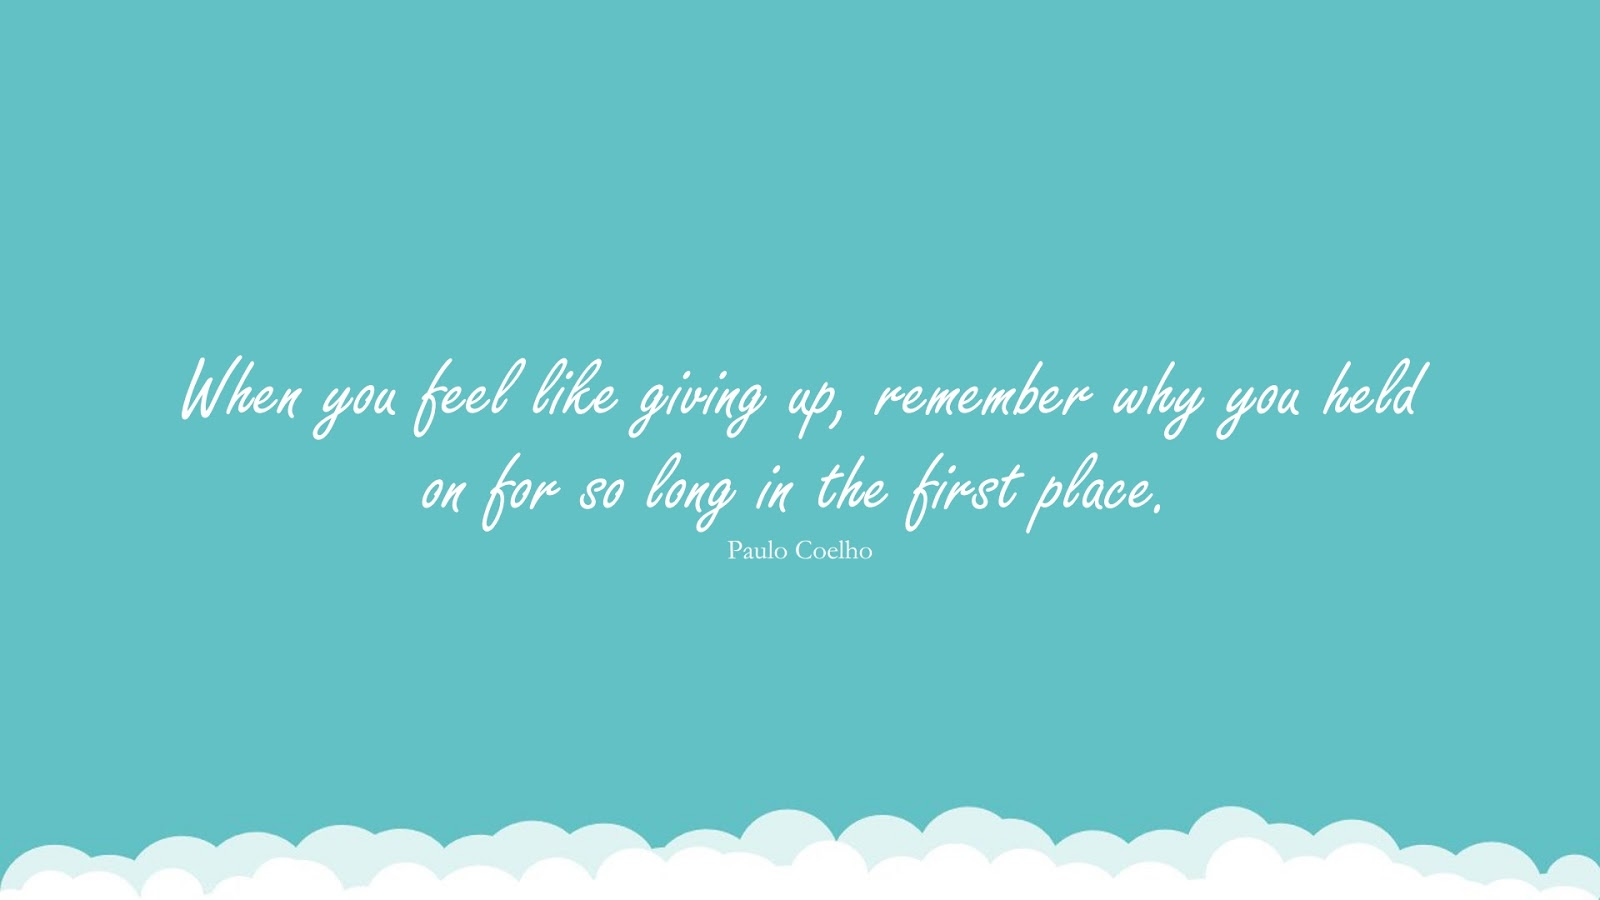 When you feel like giving up, remember why you held on for so long in the first place. (Paulo Coelho);  #NeverGiveUpQuotes